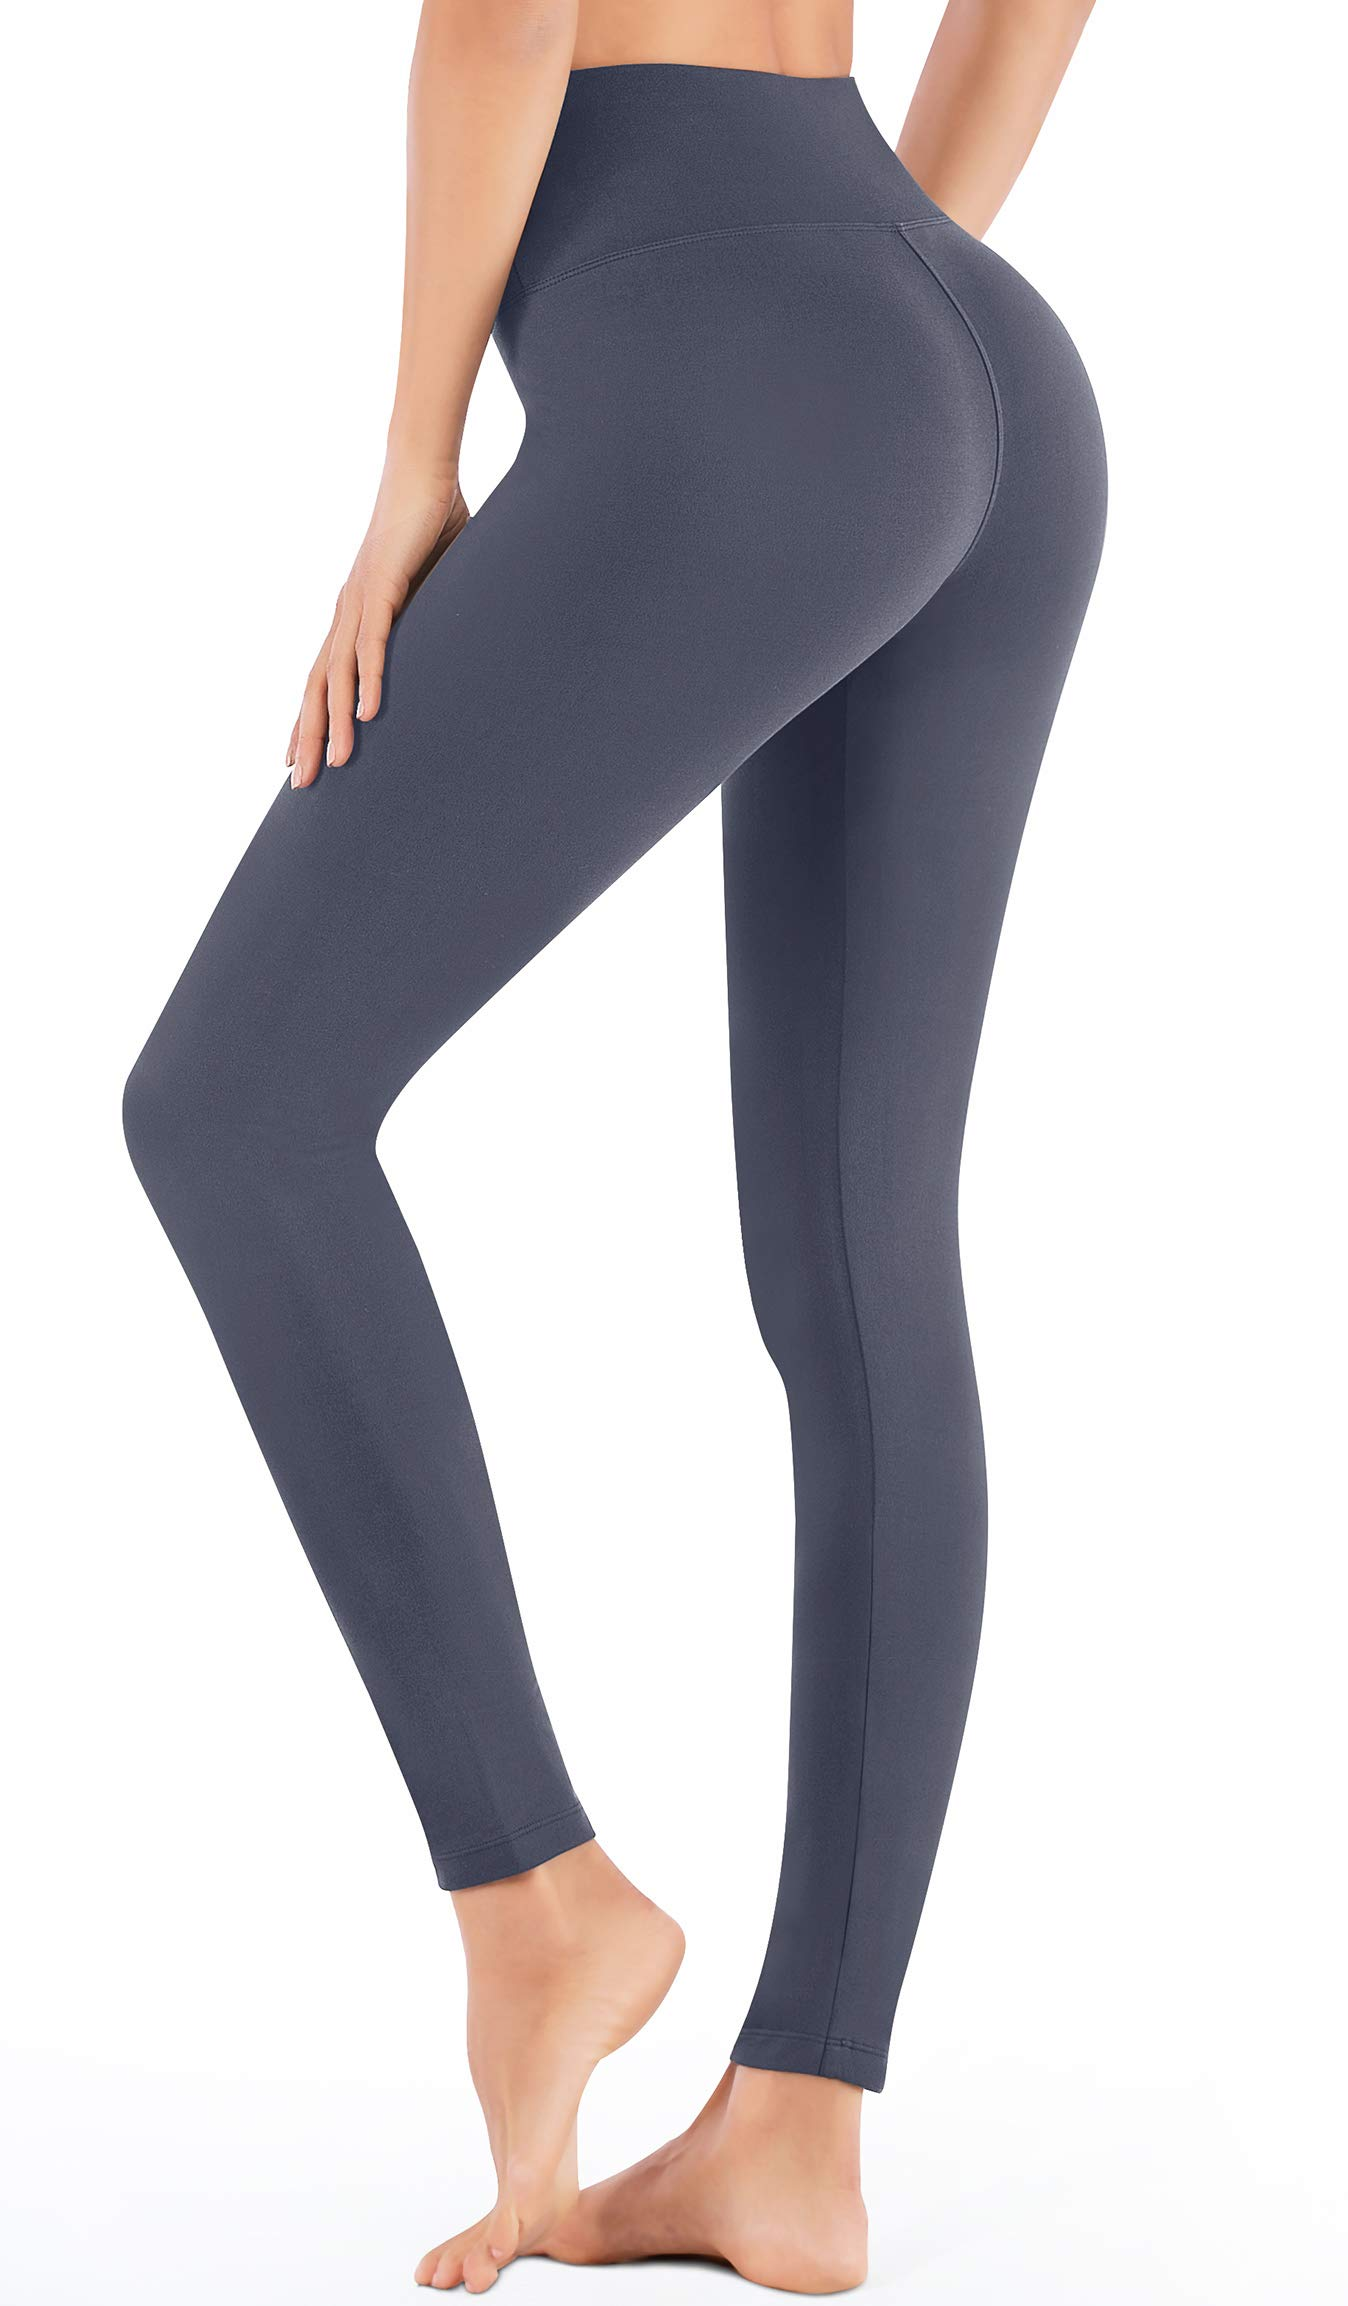 IUGA High Waisted Leggings Tummy Control Yoga Pants with Inner Pocket, Non See-Through Workout Stretch Leggings for Women (Gray, X-Small)